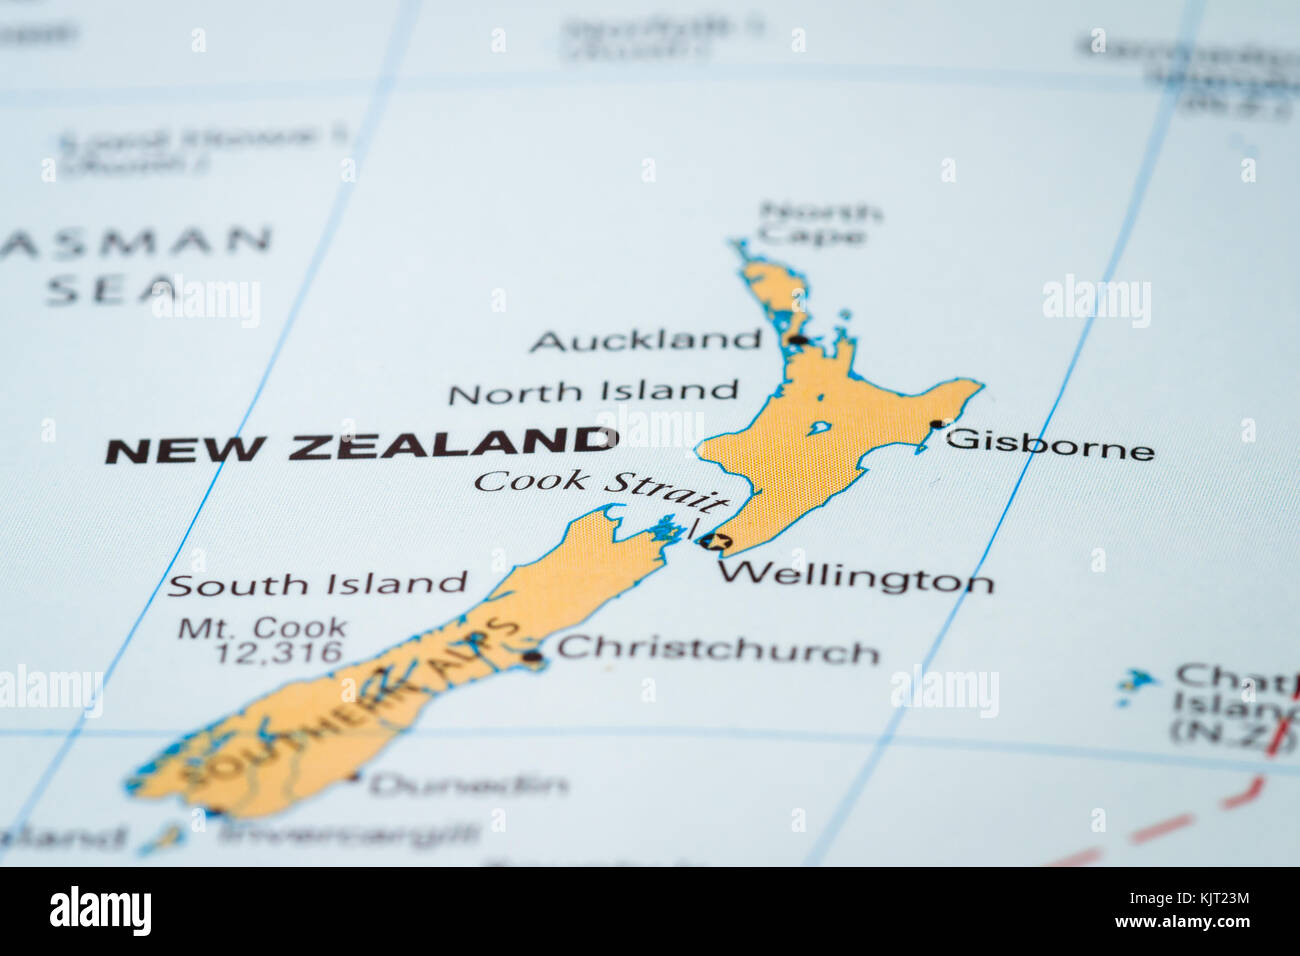 New Zealand Map Of The World.World Map With The Country Of New Zealand In Focus Stock Photo